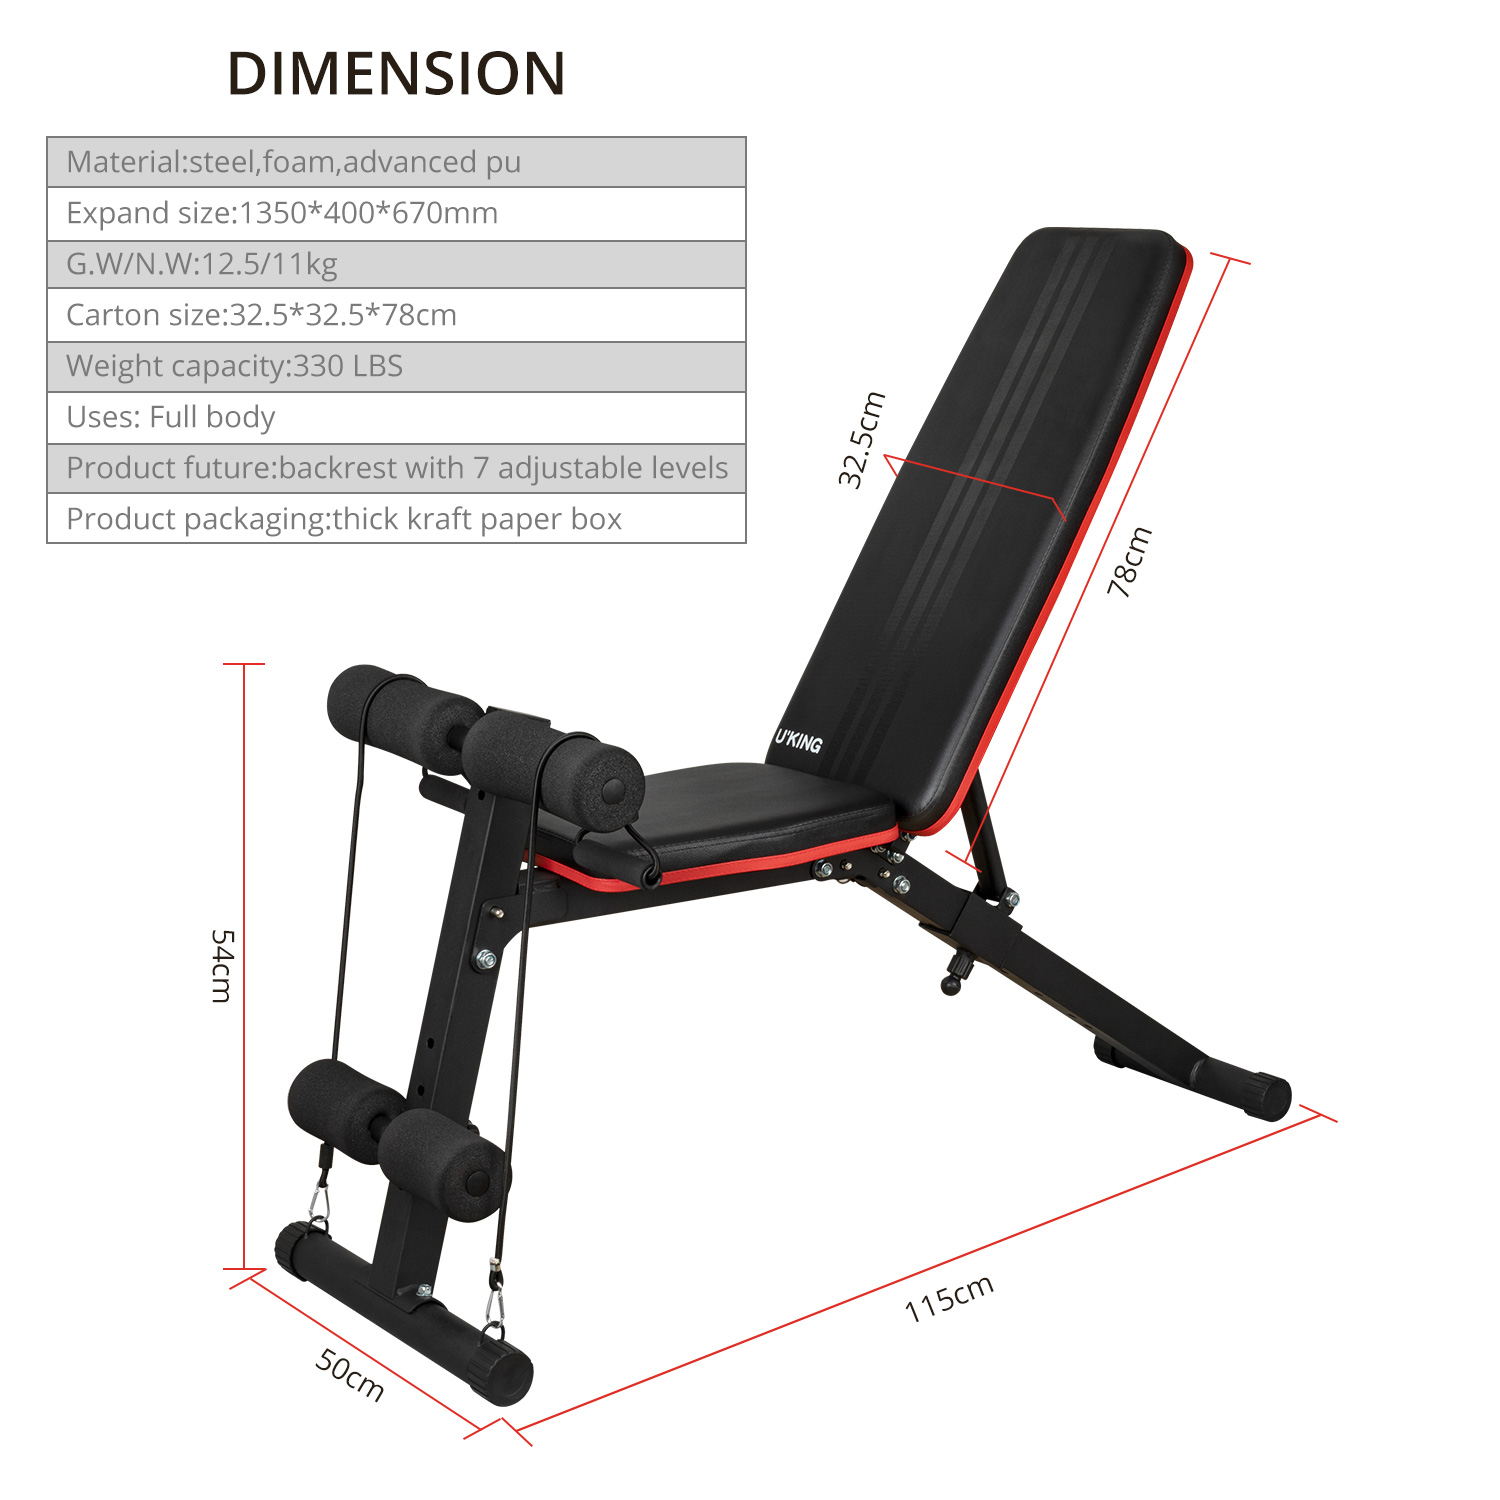 Details About Adjustable Folding Dumbbell Bench Workout Full Body Strength Exercise Home Gym